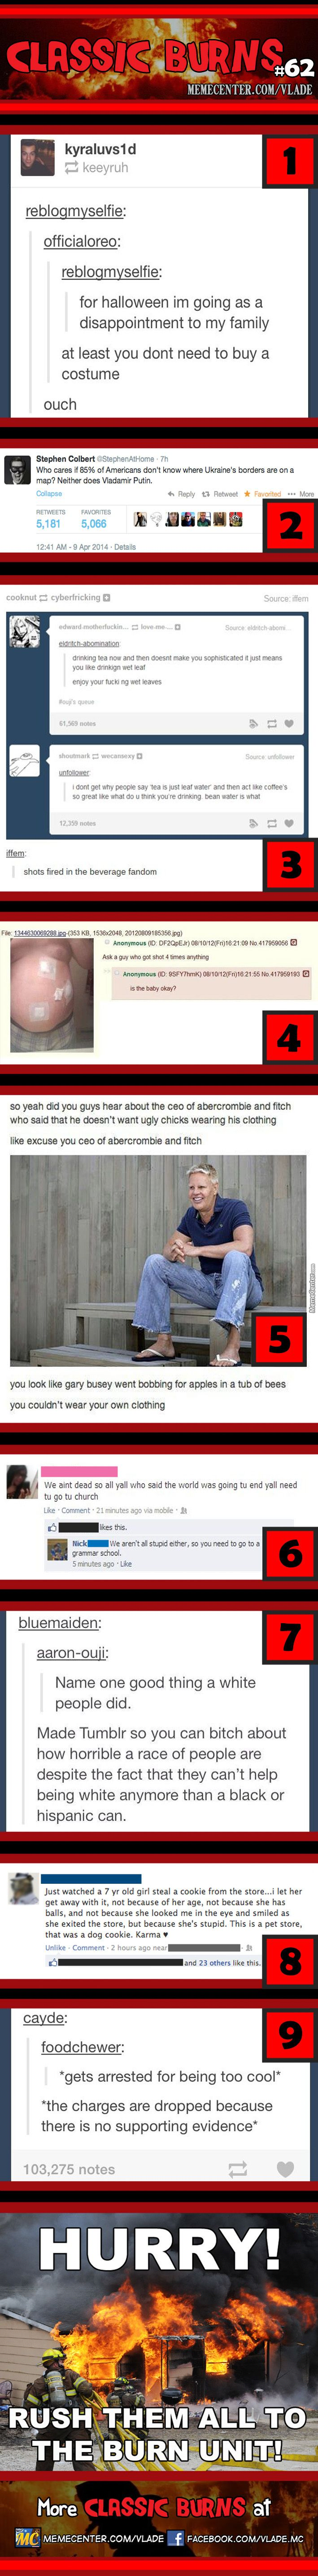 Pinning all for #5. I nearly had to call 911 I was laughing so hard. Hilarious and accurate.